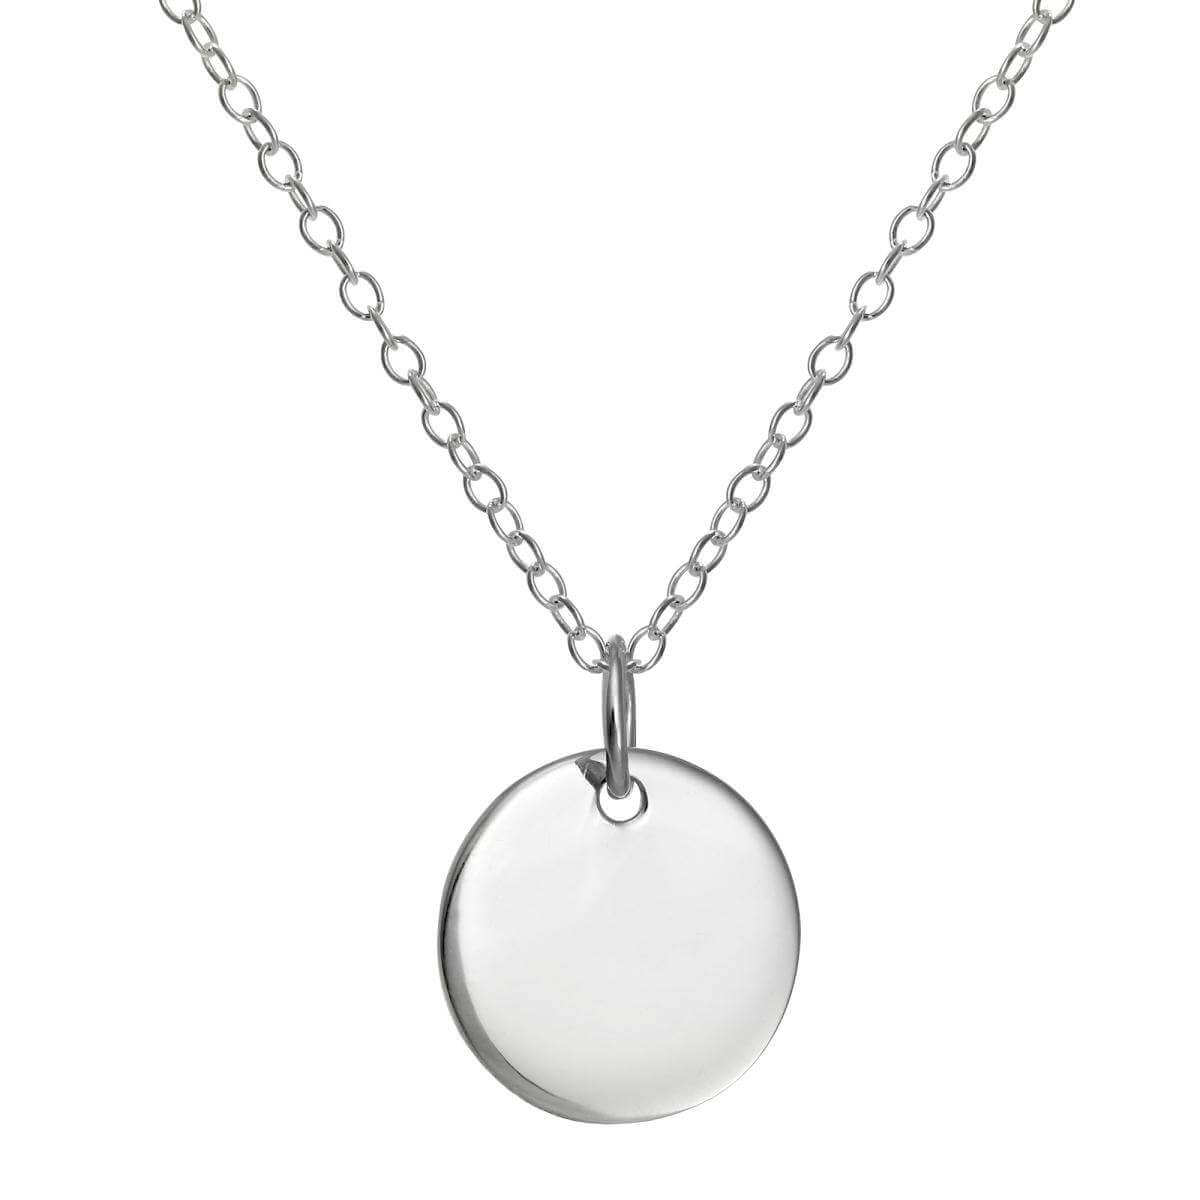 product lou original of engraved anna by pendant engravable moon annalouoflondon necklace notonthehighstreet com london